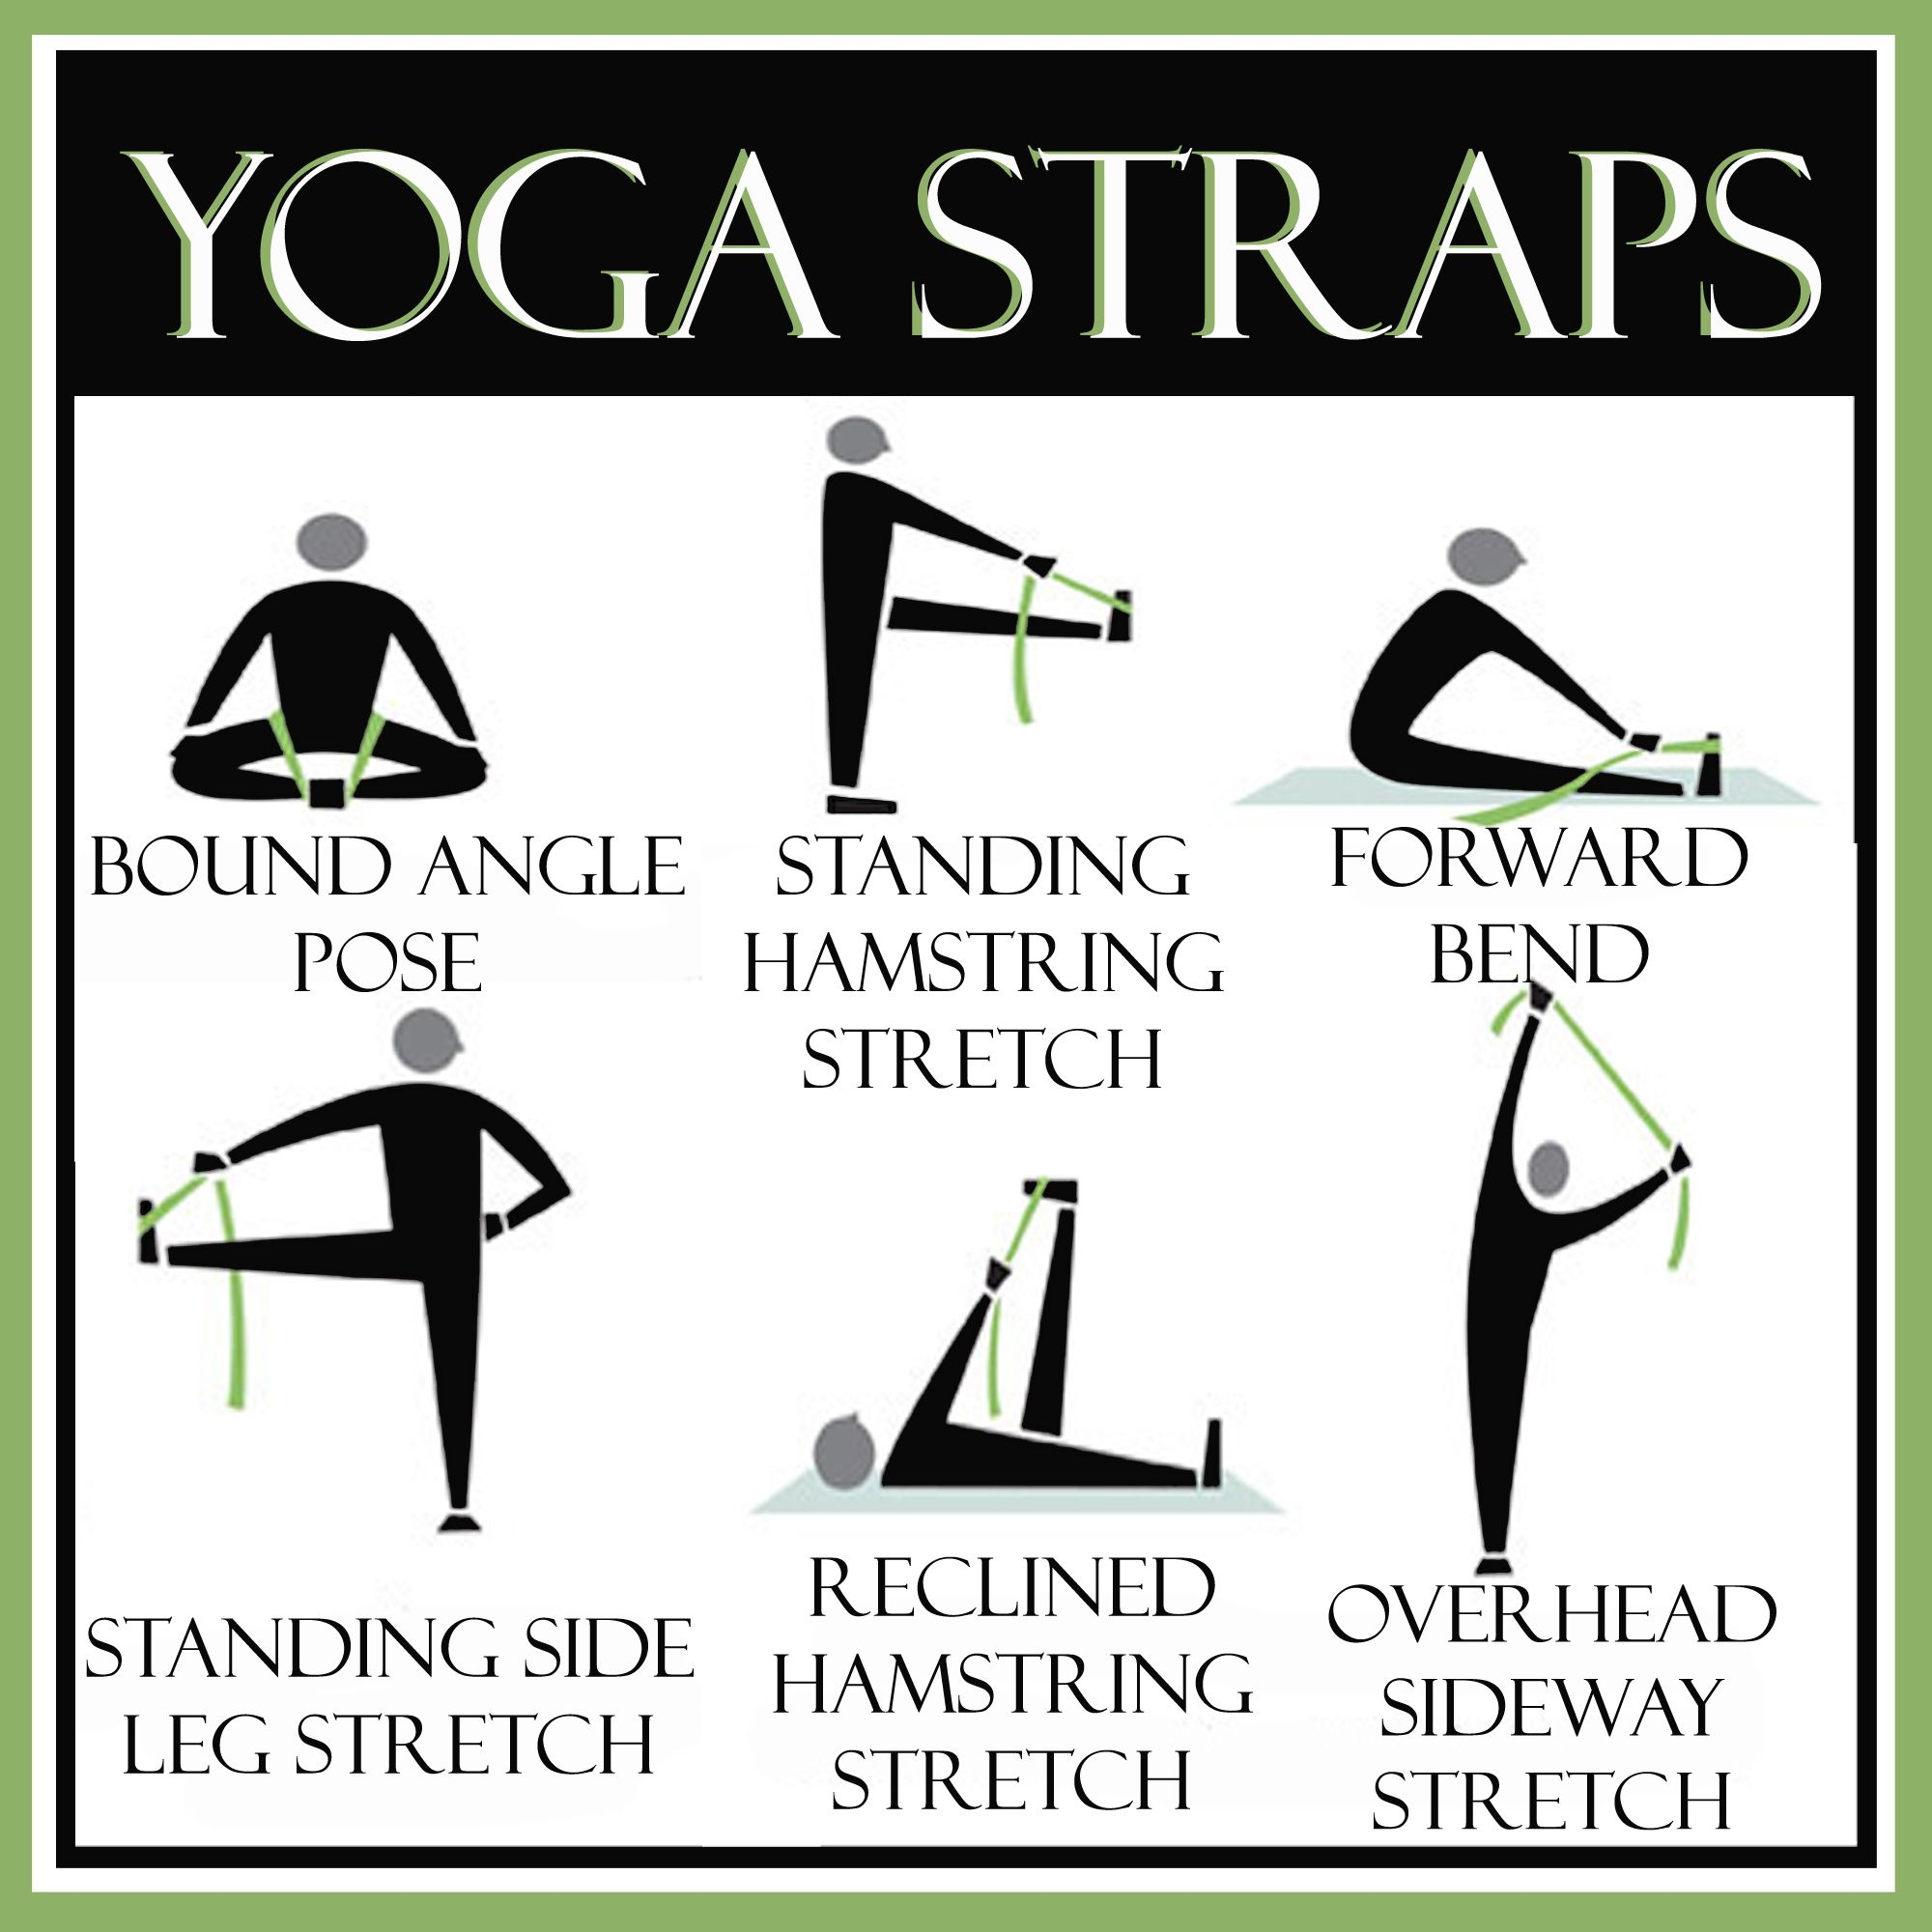 Yoga. Strap. Link is UseLess. Picture is great for a visual reference. ea2efcfc7d3e